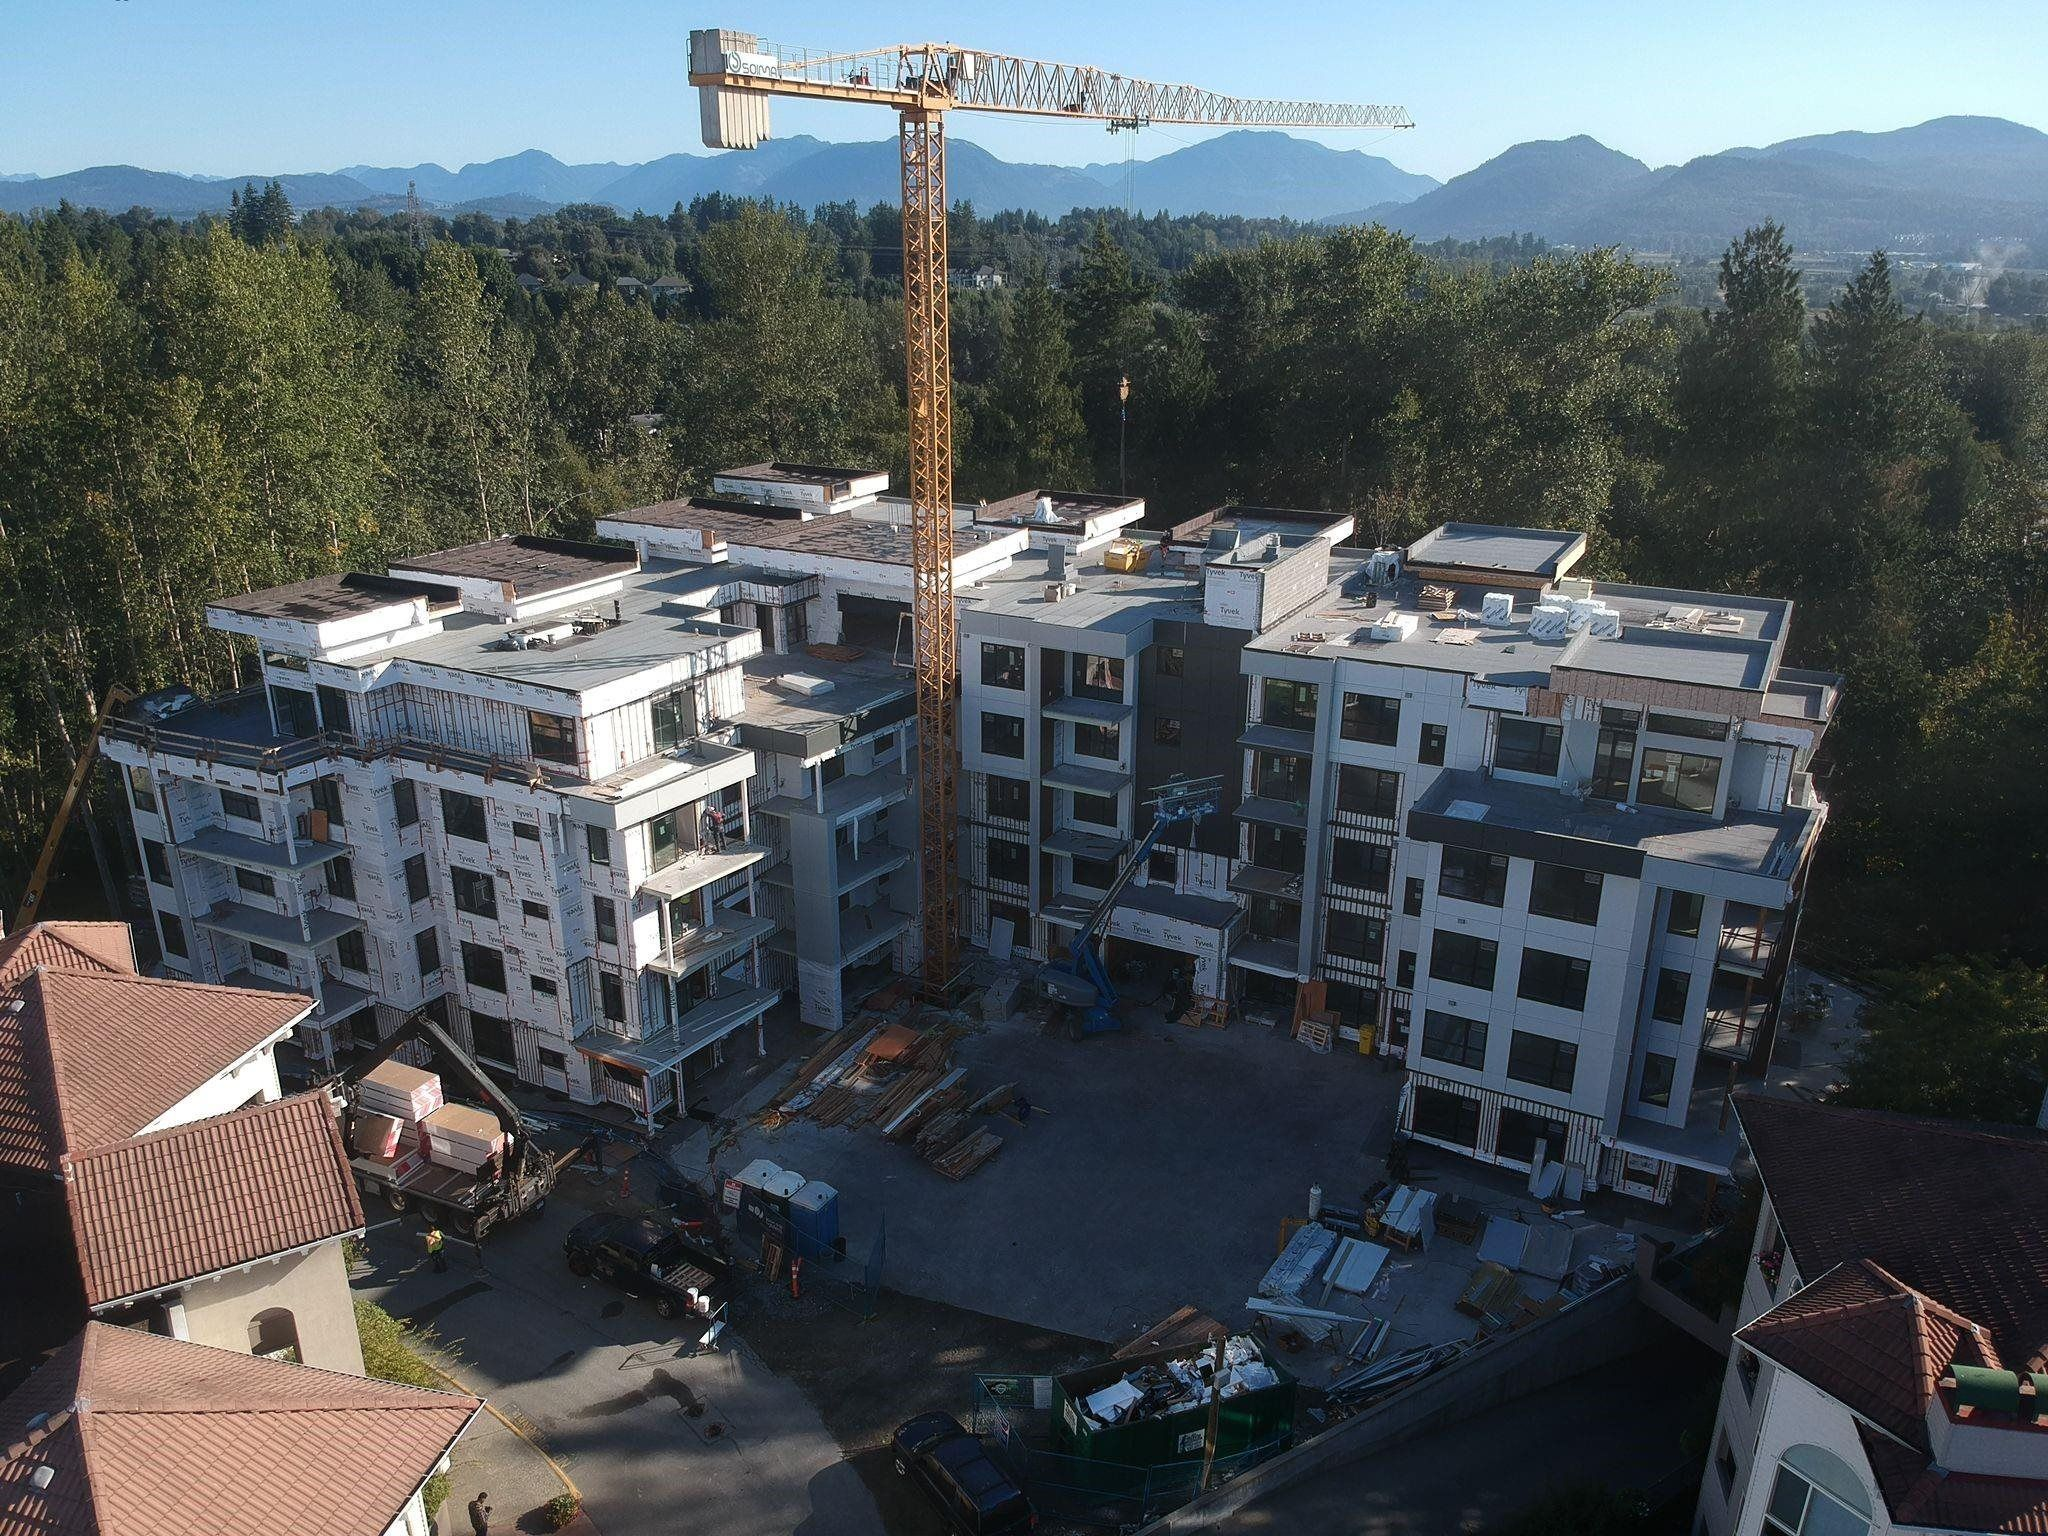 """Main Photo: 202 3182 GLADWIN ROAD in Abbotsford: Central Abbotsford Condo for sale in """"Regency Park"""" : MLS®# R2618258"""